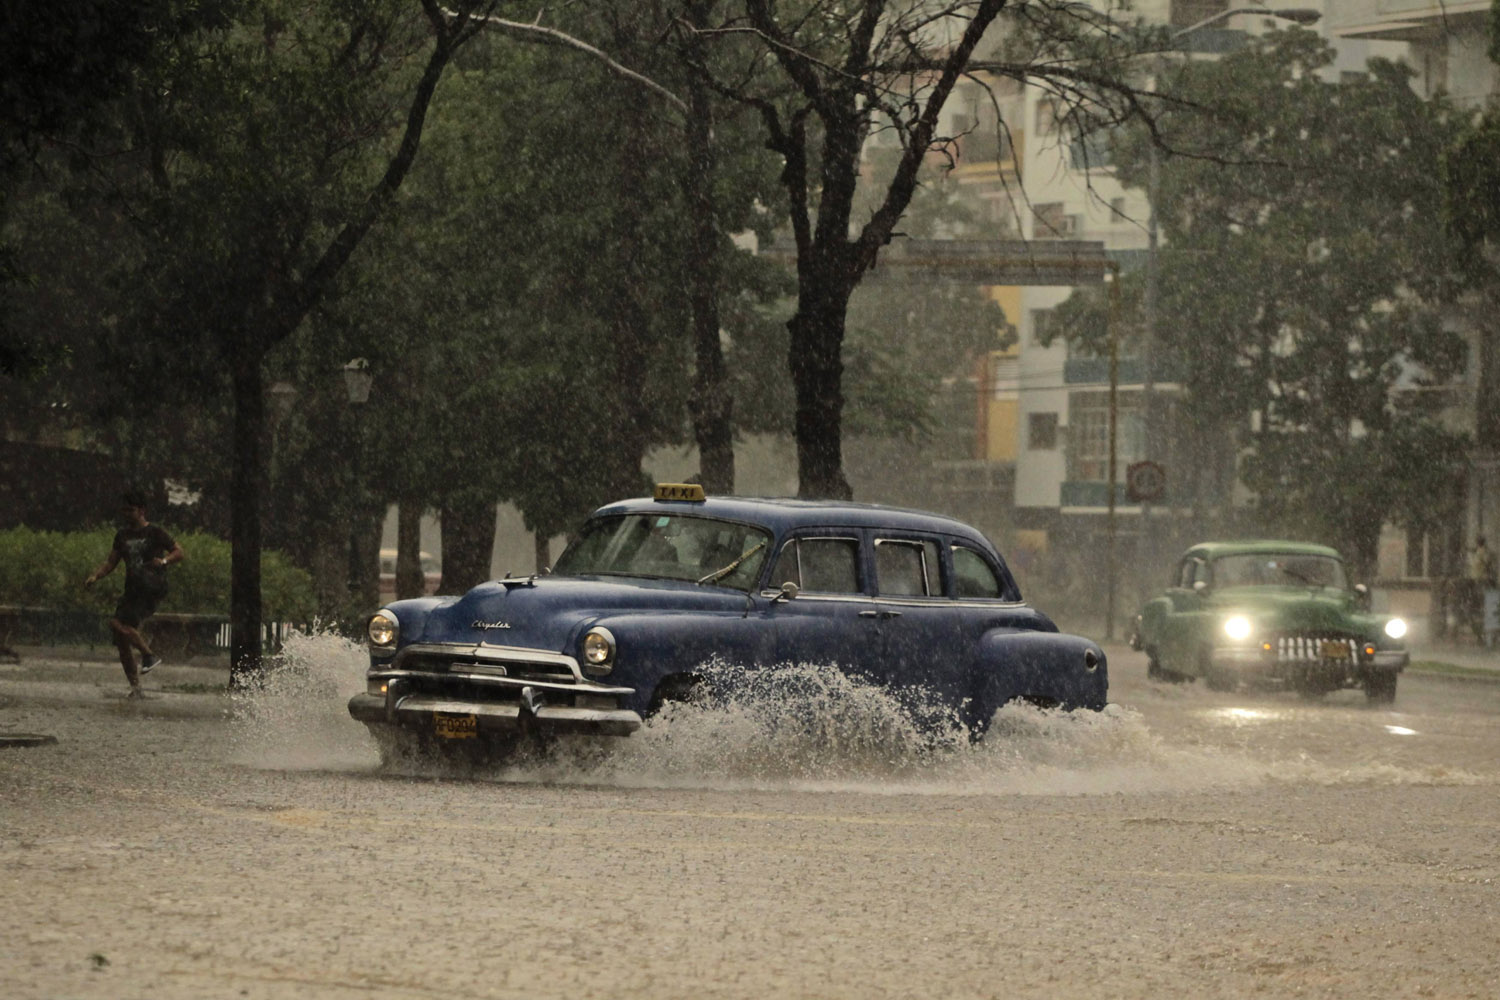 Sept. 15, 2012. Private licensed taxis are driven under heavy rain during a tropical thunderstorm in Havana.